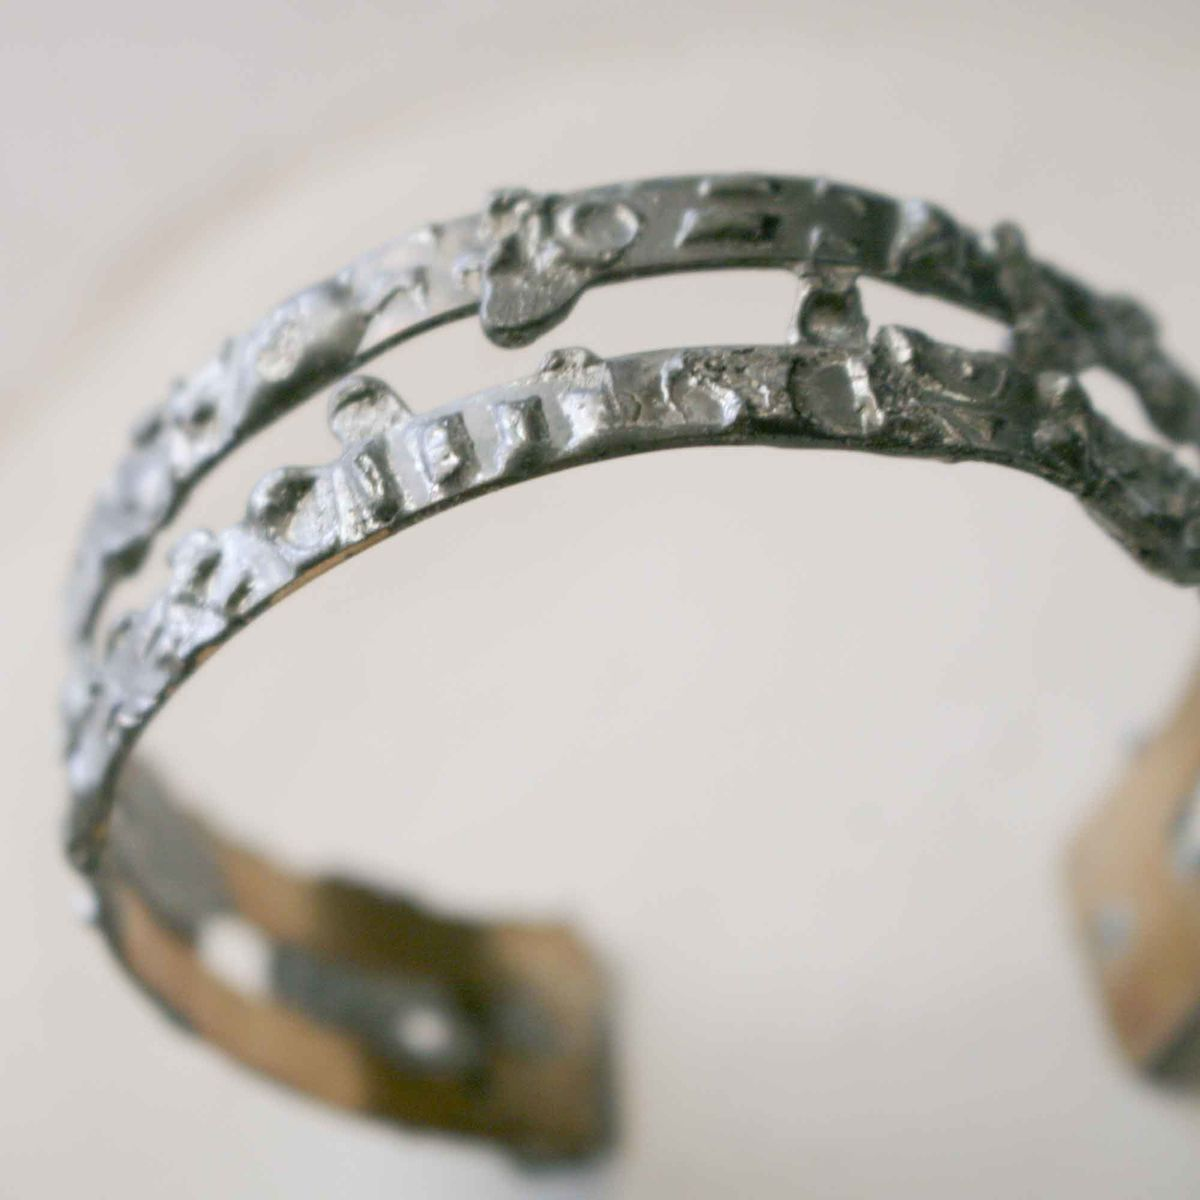 Rustic Texture Brass Cuff Bracelet with Stamped Pewter Solder - product image